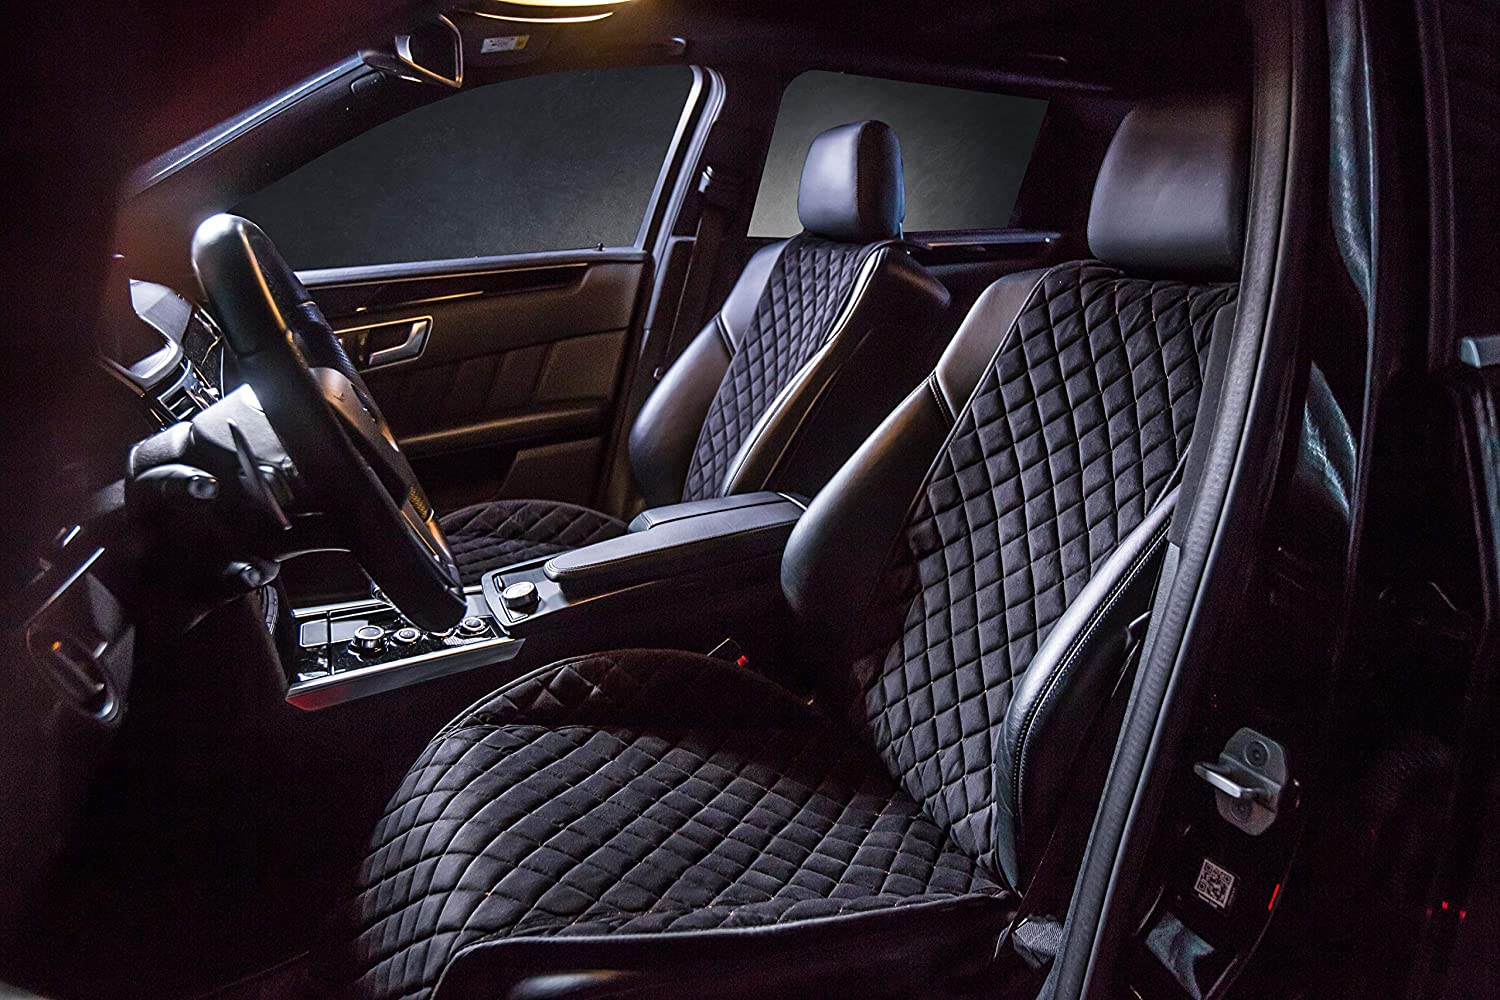 Trucks 2-pc Compatible with 90/% Cars Car Seat Protectors SUVs Premium Quality 100/% Handcrafted С СANTRA Cantra Z-Model Minivans Front Car Seat Covers Black with White Stitching